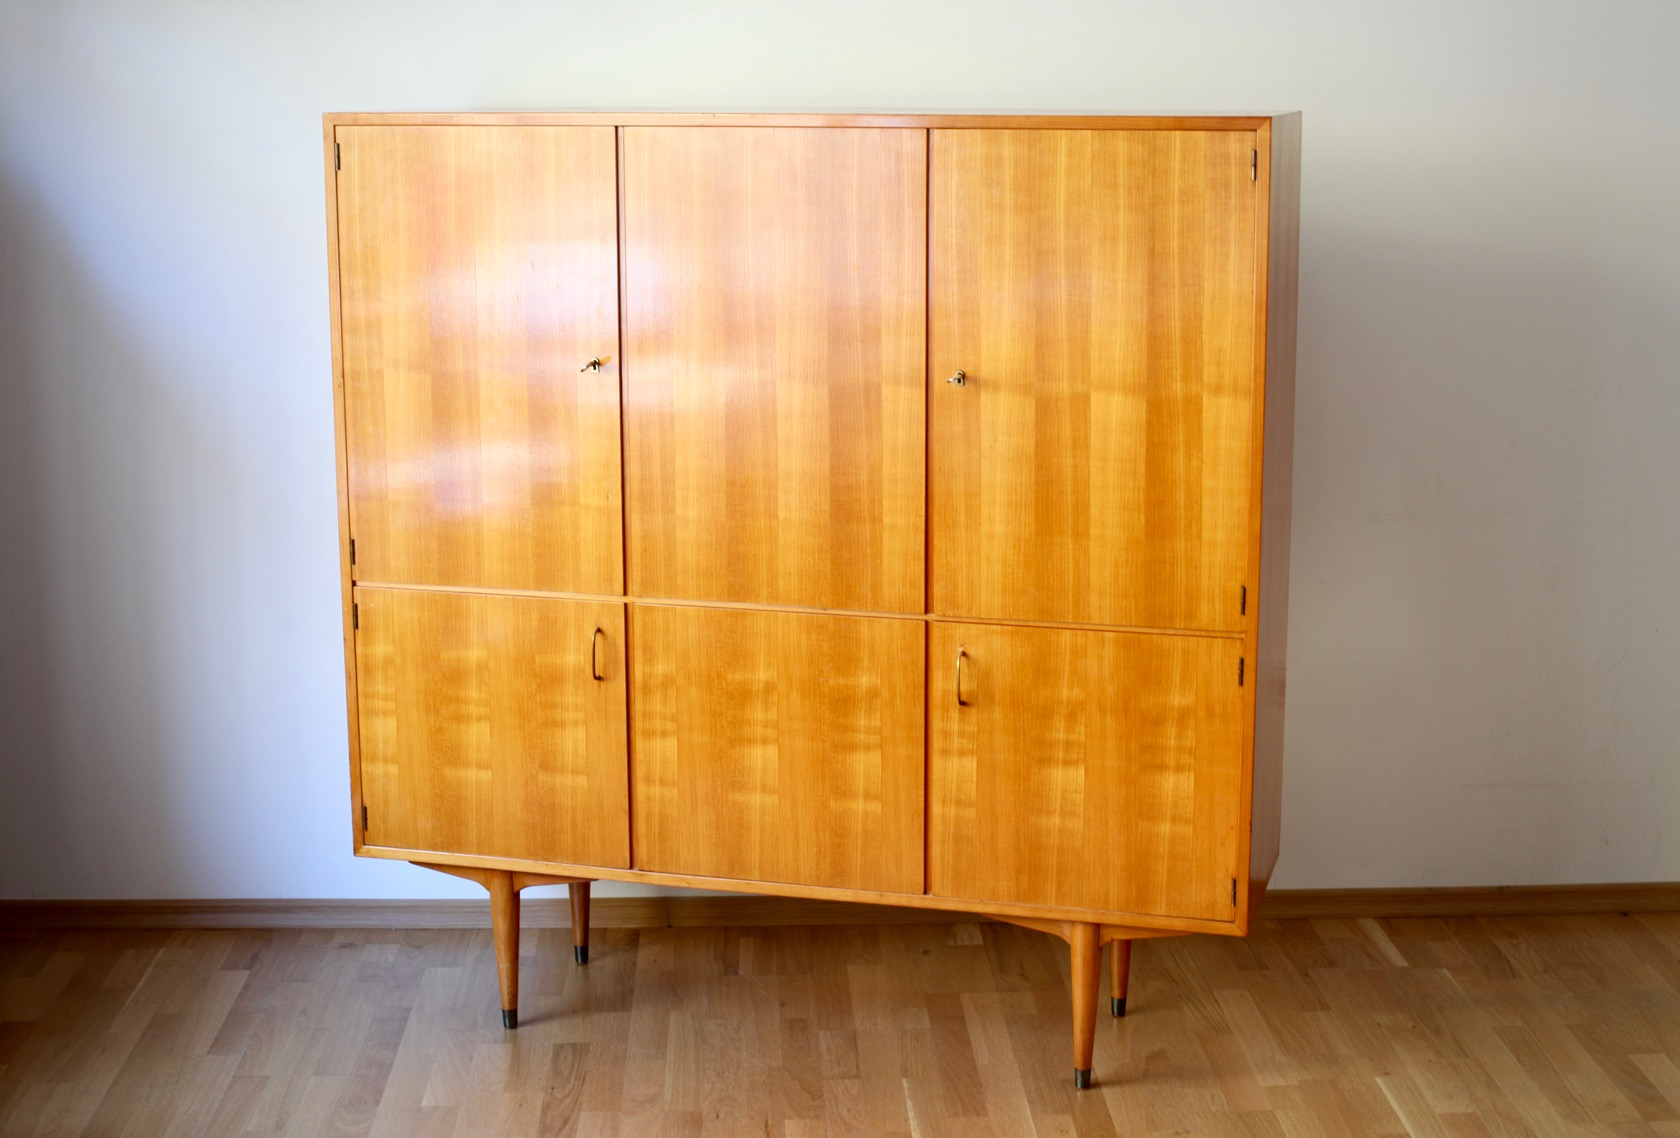 50ies highboard in kirsche raumwunder vintage wohnen in n rnberg. Black Bedroom Furniture Sets. Home Design Ideas